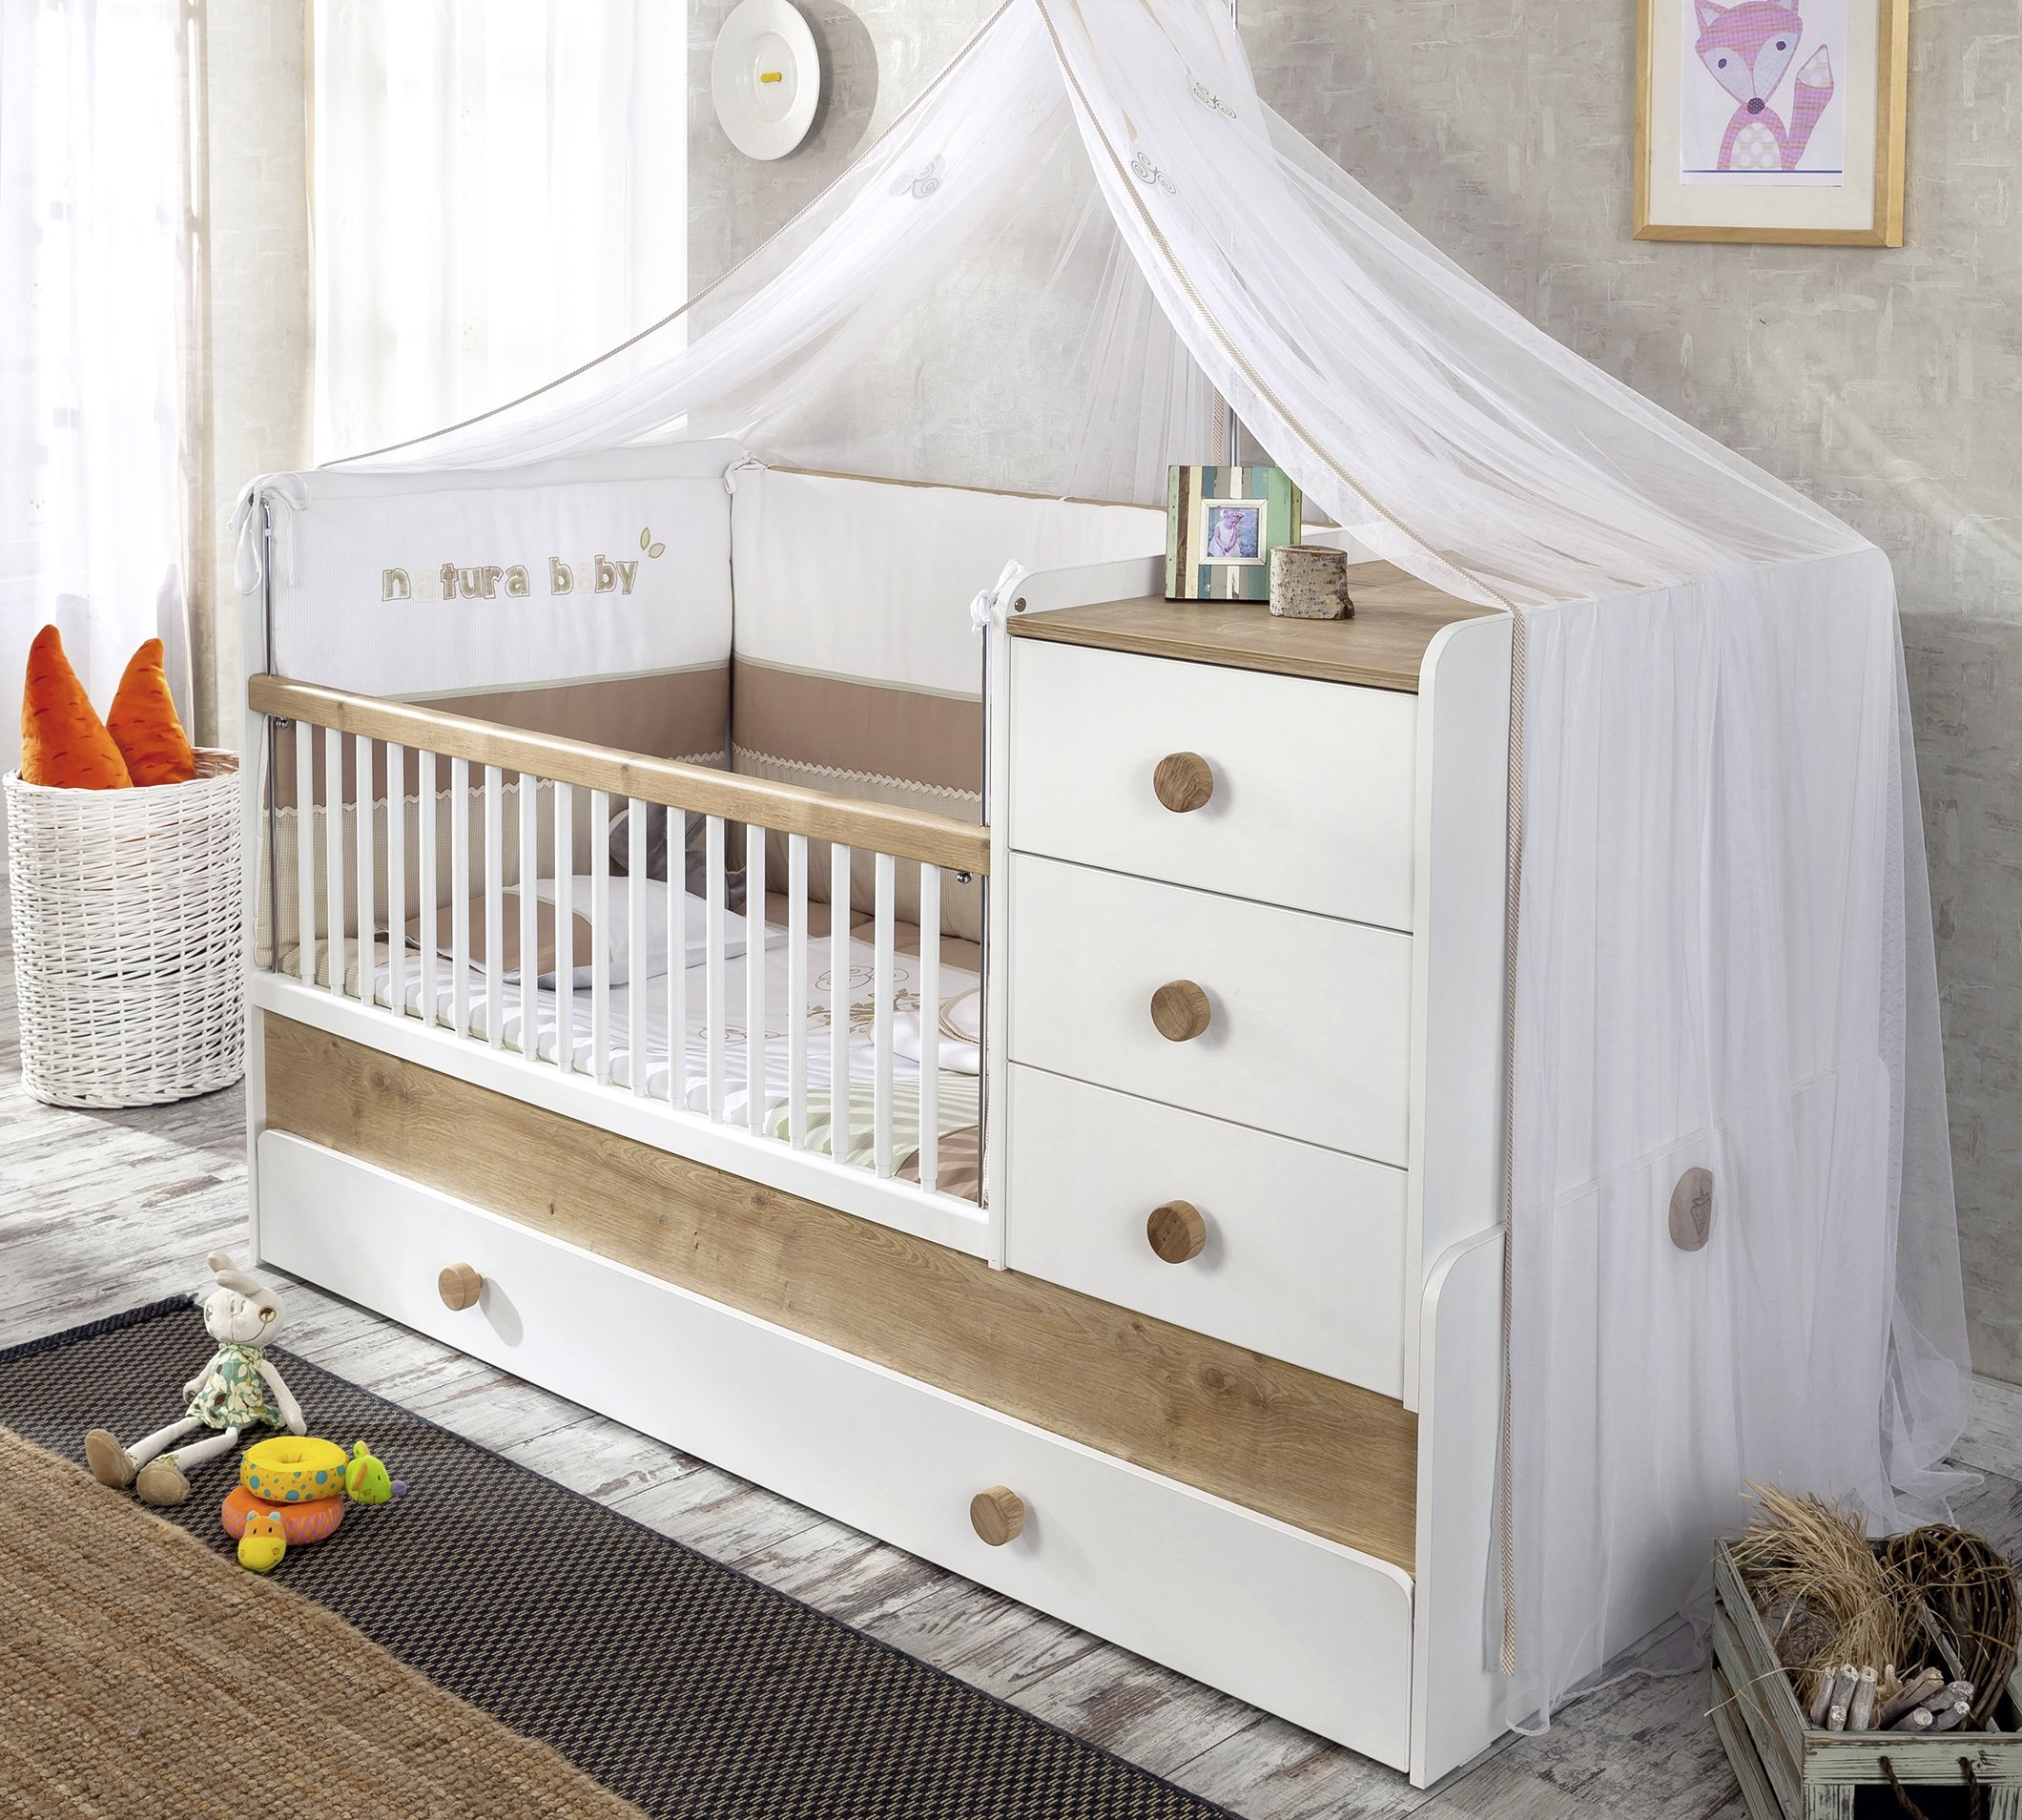 cilek natura baby mitwachsendes babybett liegefl chen 80. Black Bedroom Furniture Sets. Home Design Ideas